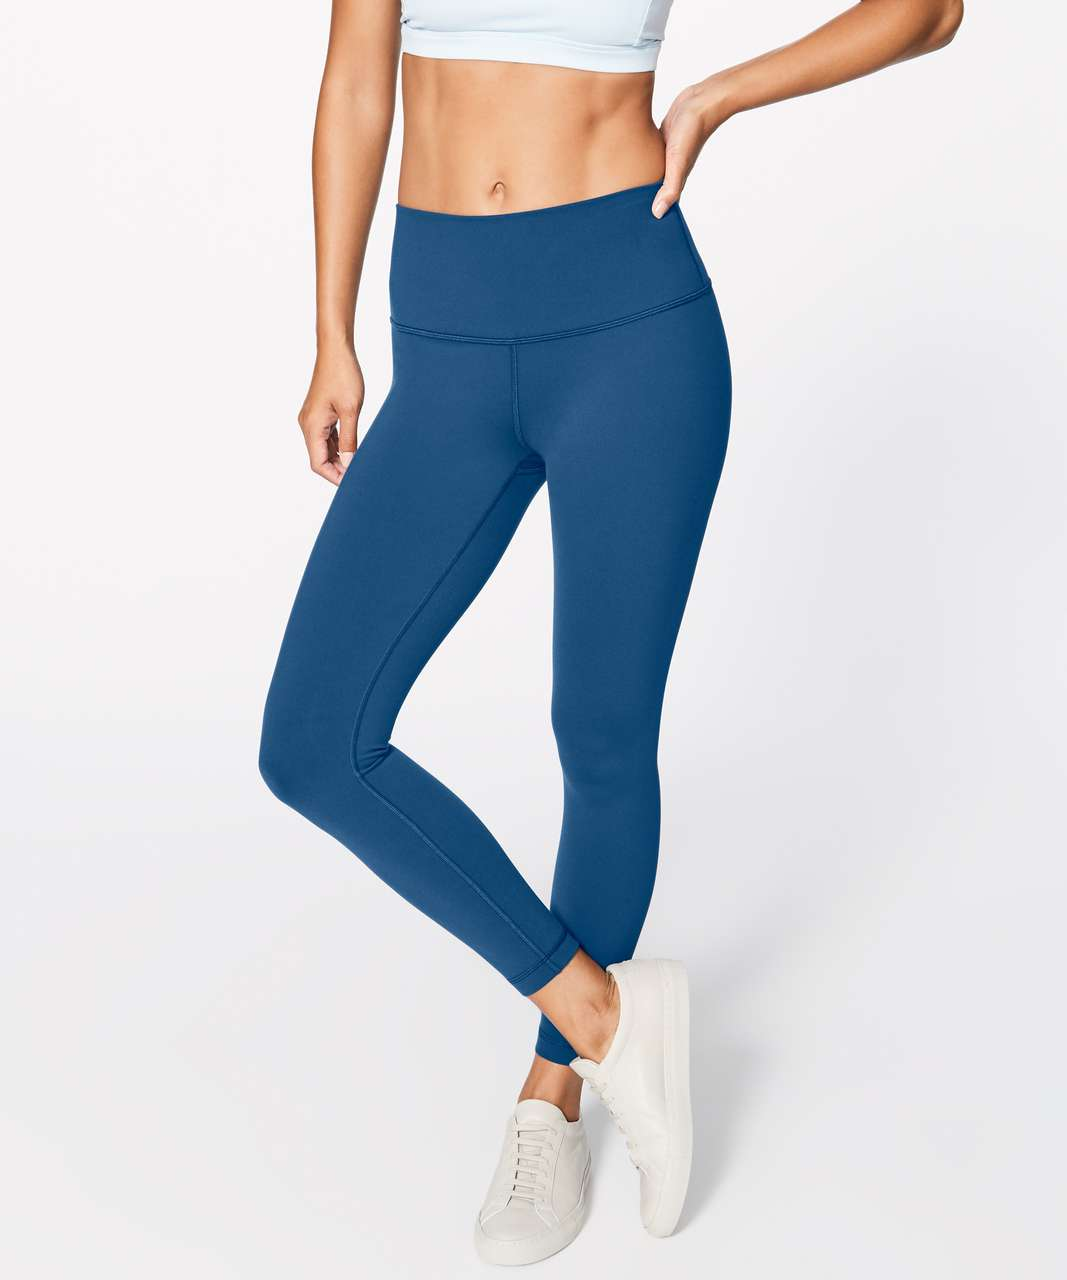 "Lululemon Wunder Under Hi-Rise 7/8 Tight (Full-On Luon 25"") - Night Tide"